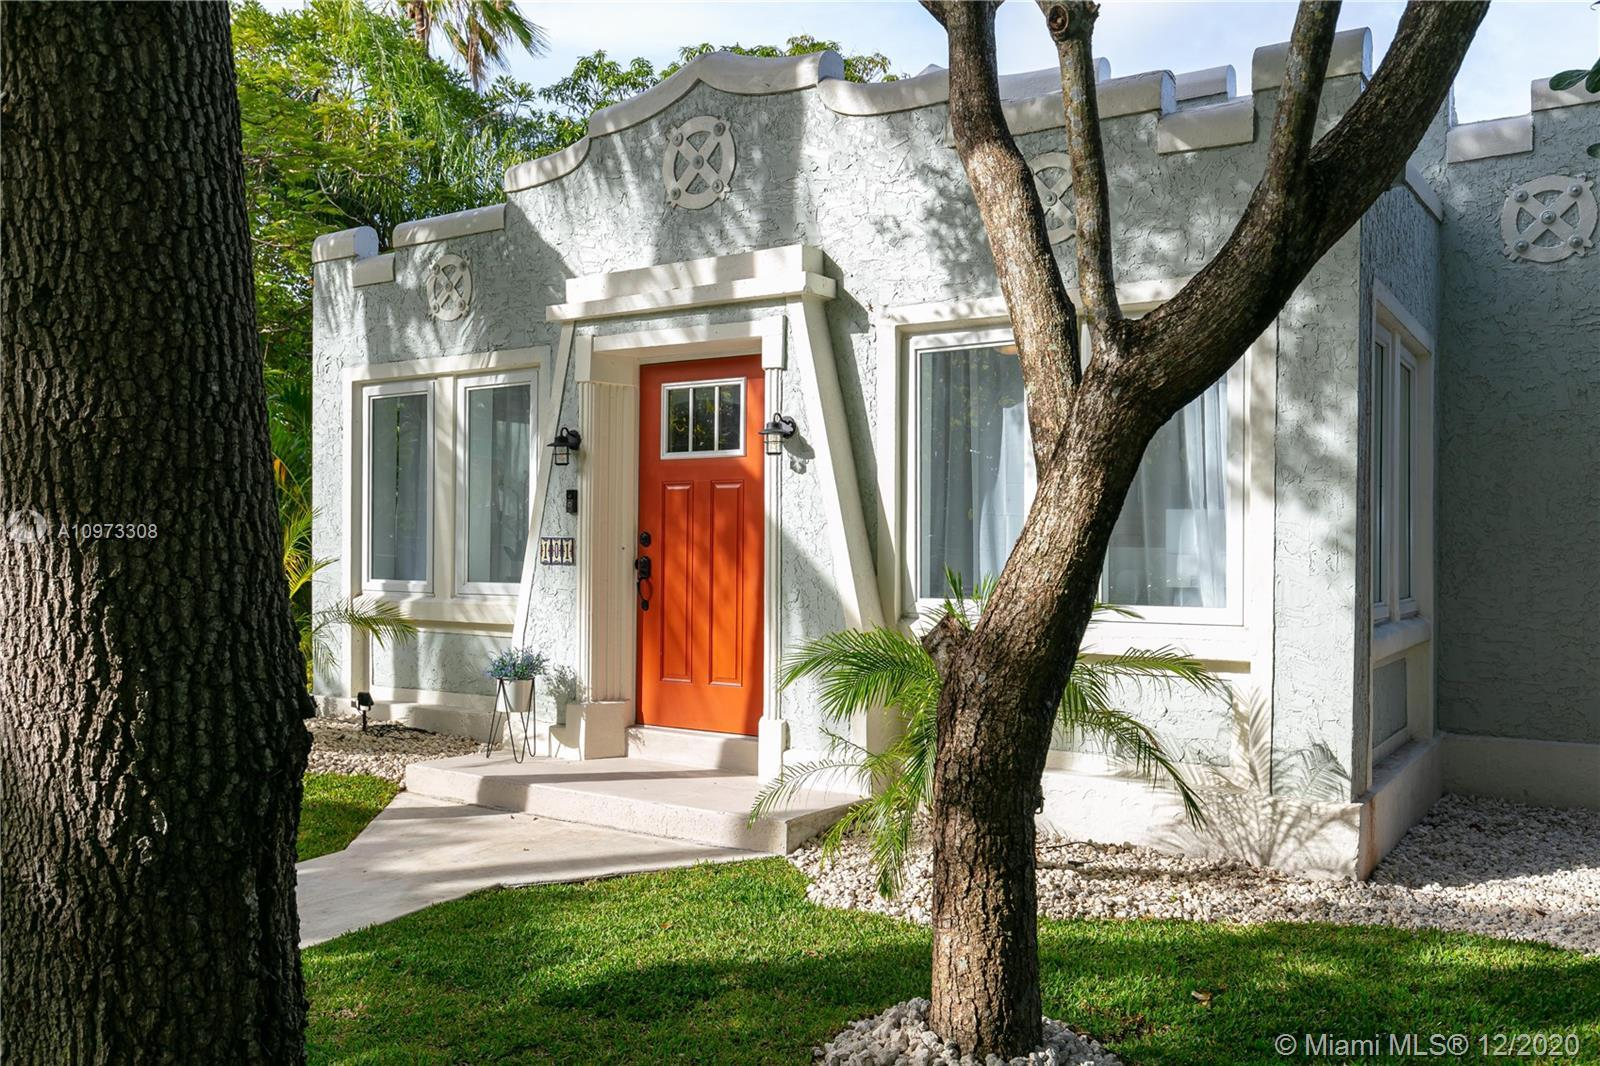 Beautifully-restored 1926 Spanish Mission style bungalow located in Historic Buena Vista East. 3 bed